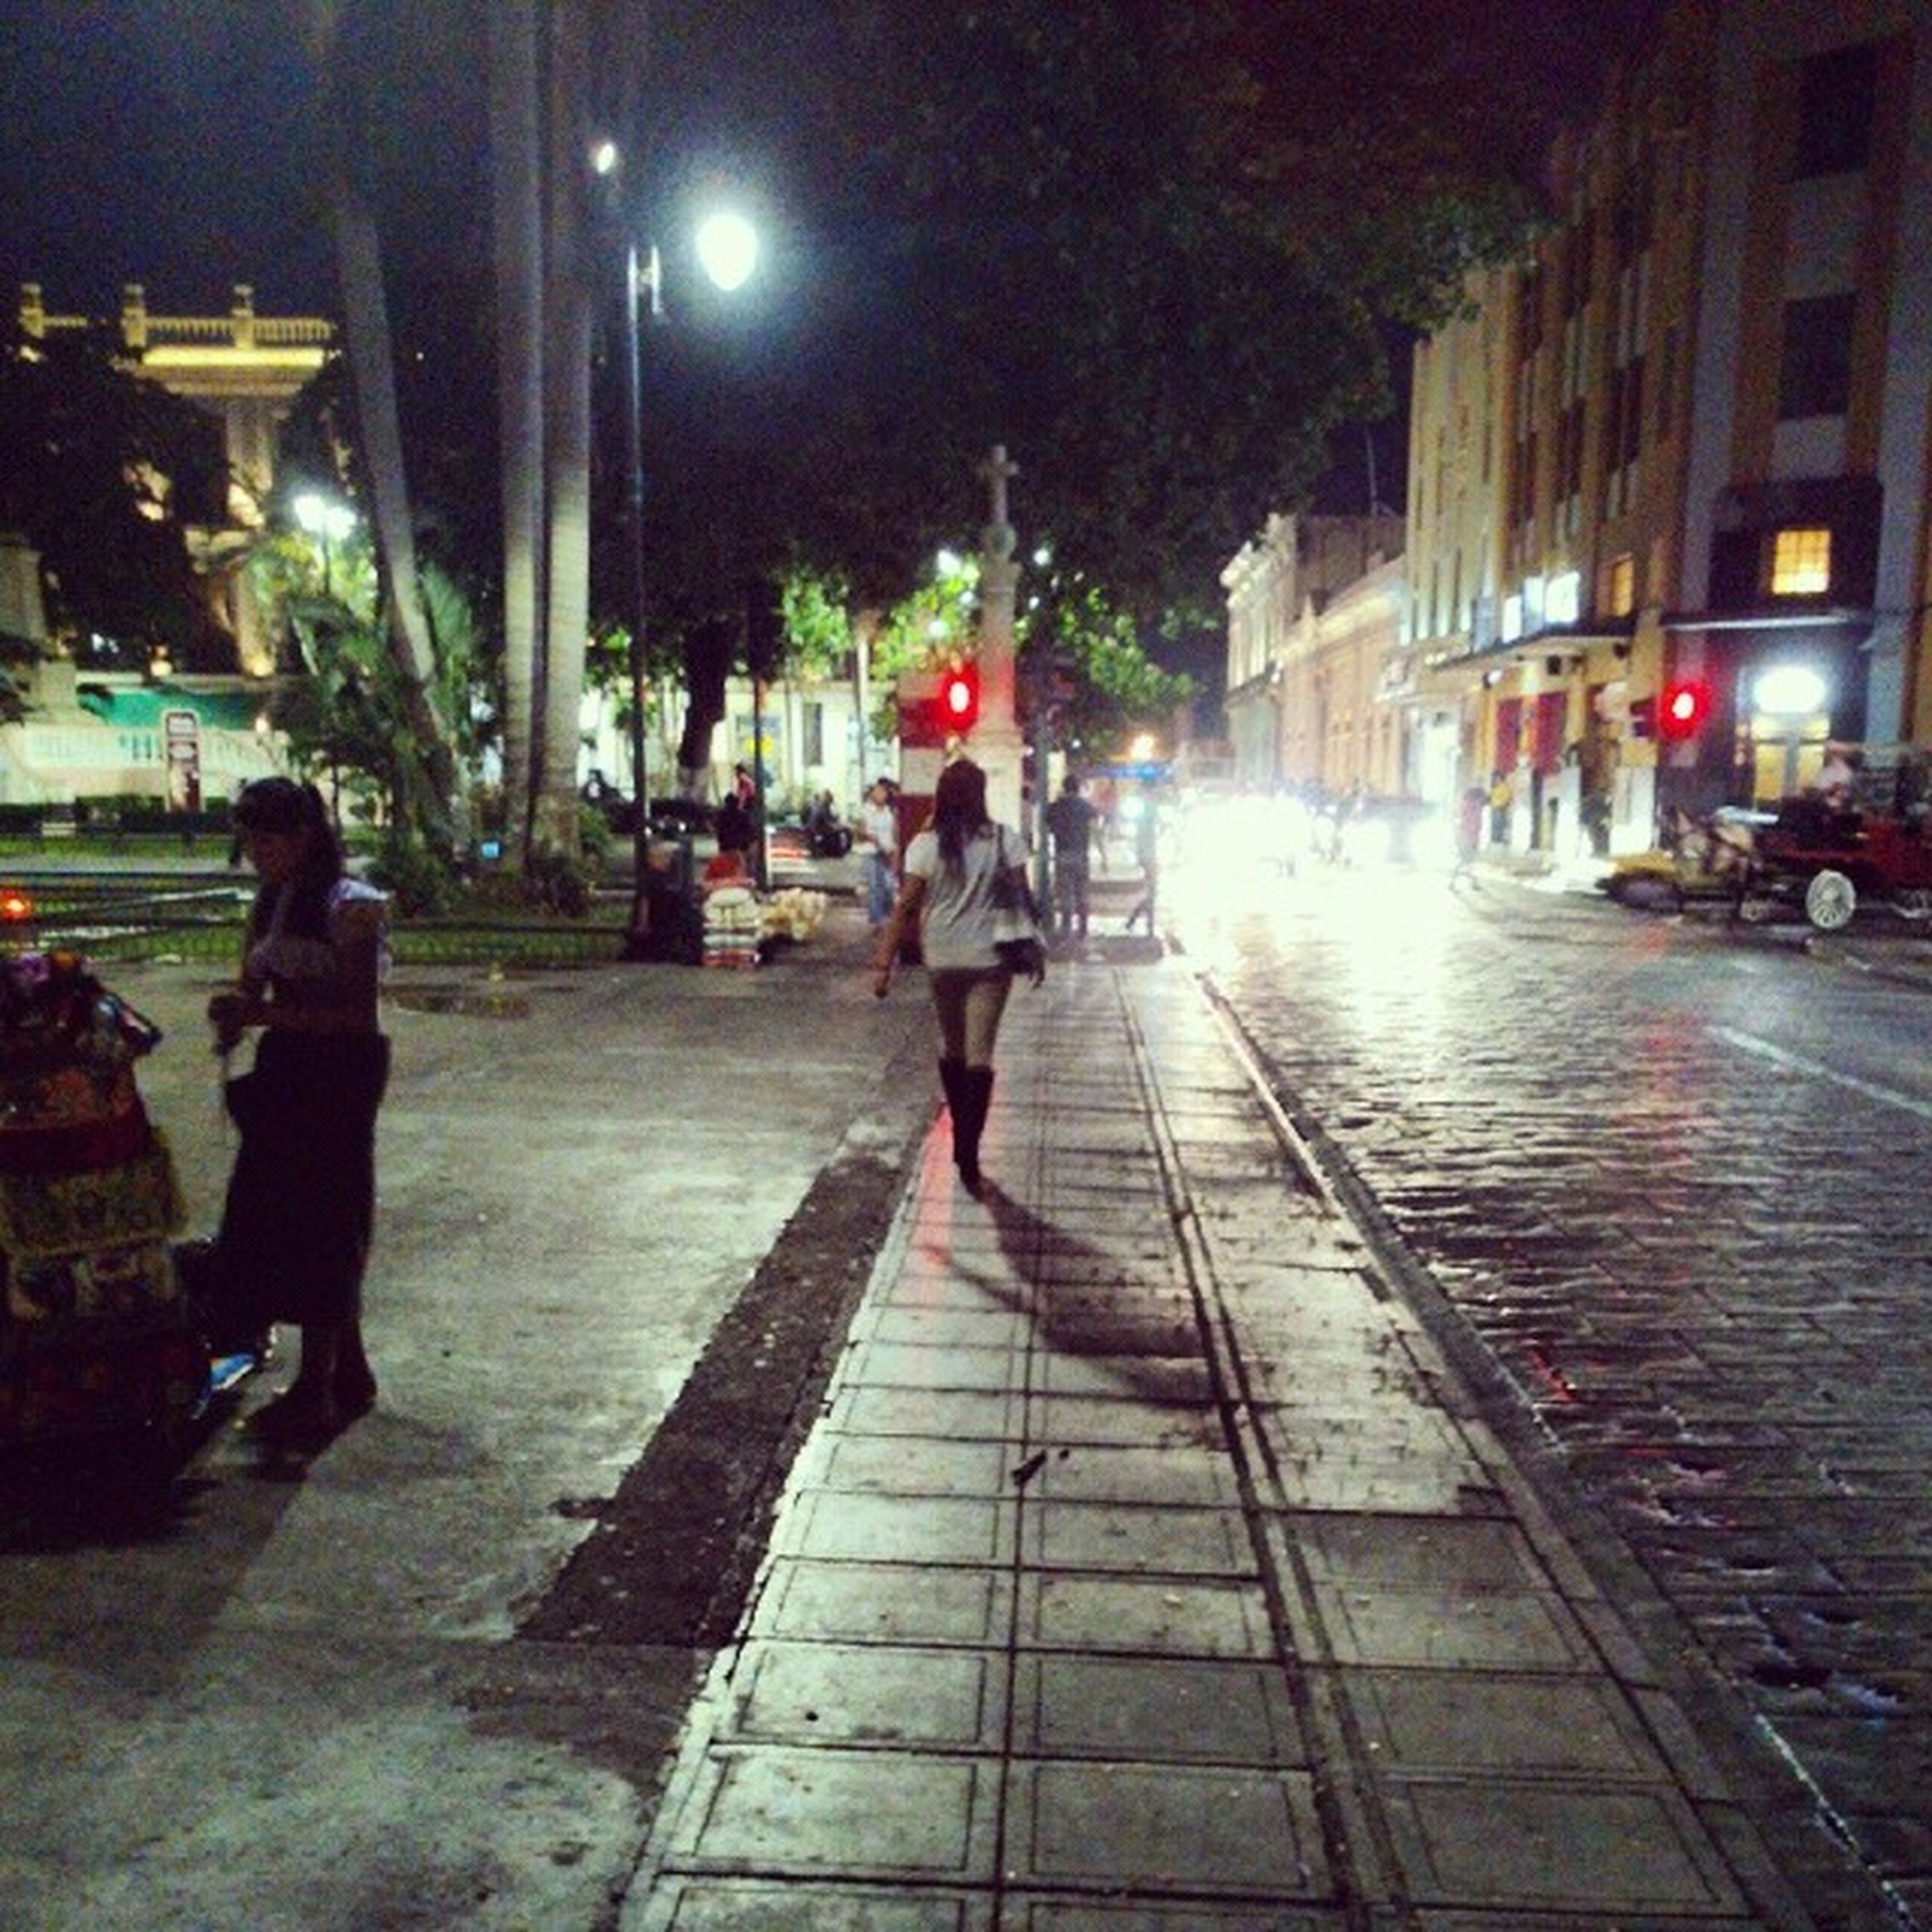 street, city, building exterior, illuminated, night, walking, city life, architecture, city street, the way forward, full length, built structure, lifestyles, transportation, street light, men, rear view, car, person